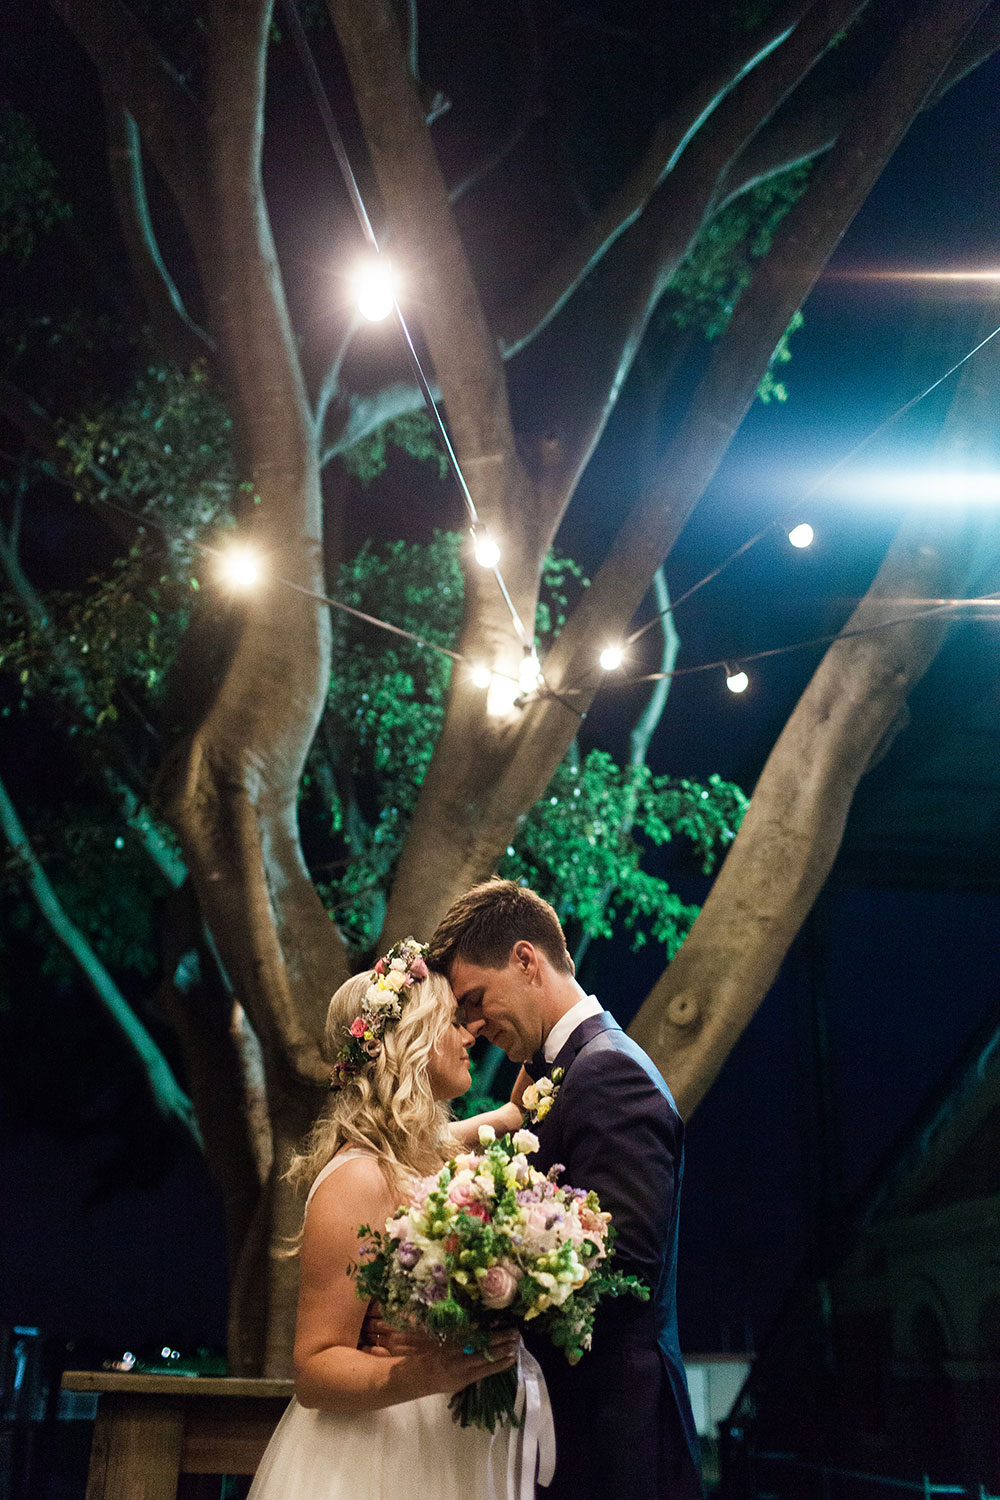 The wedding of Anna and Zac